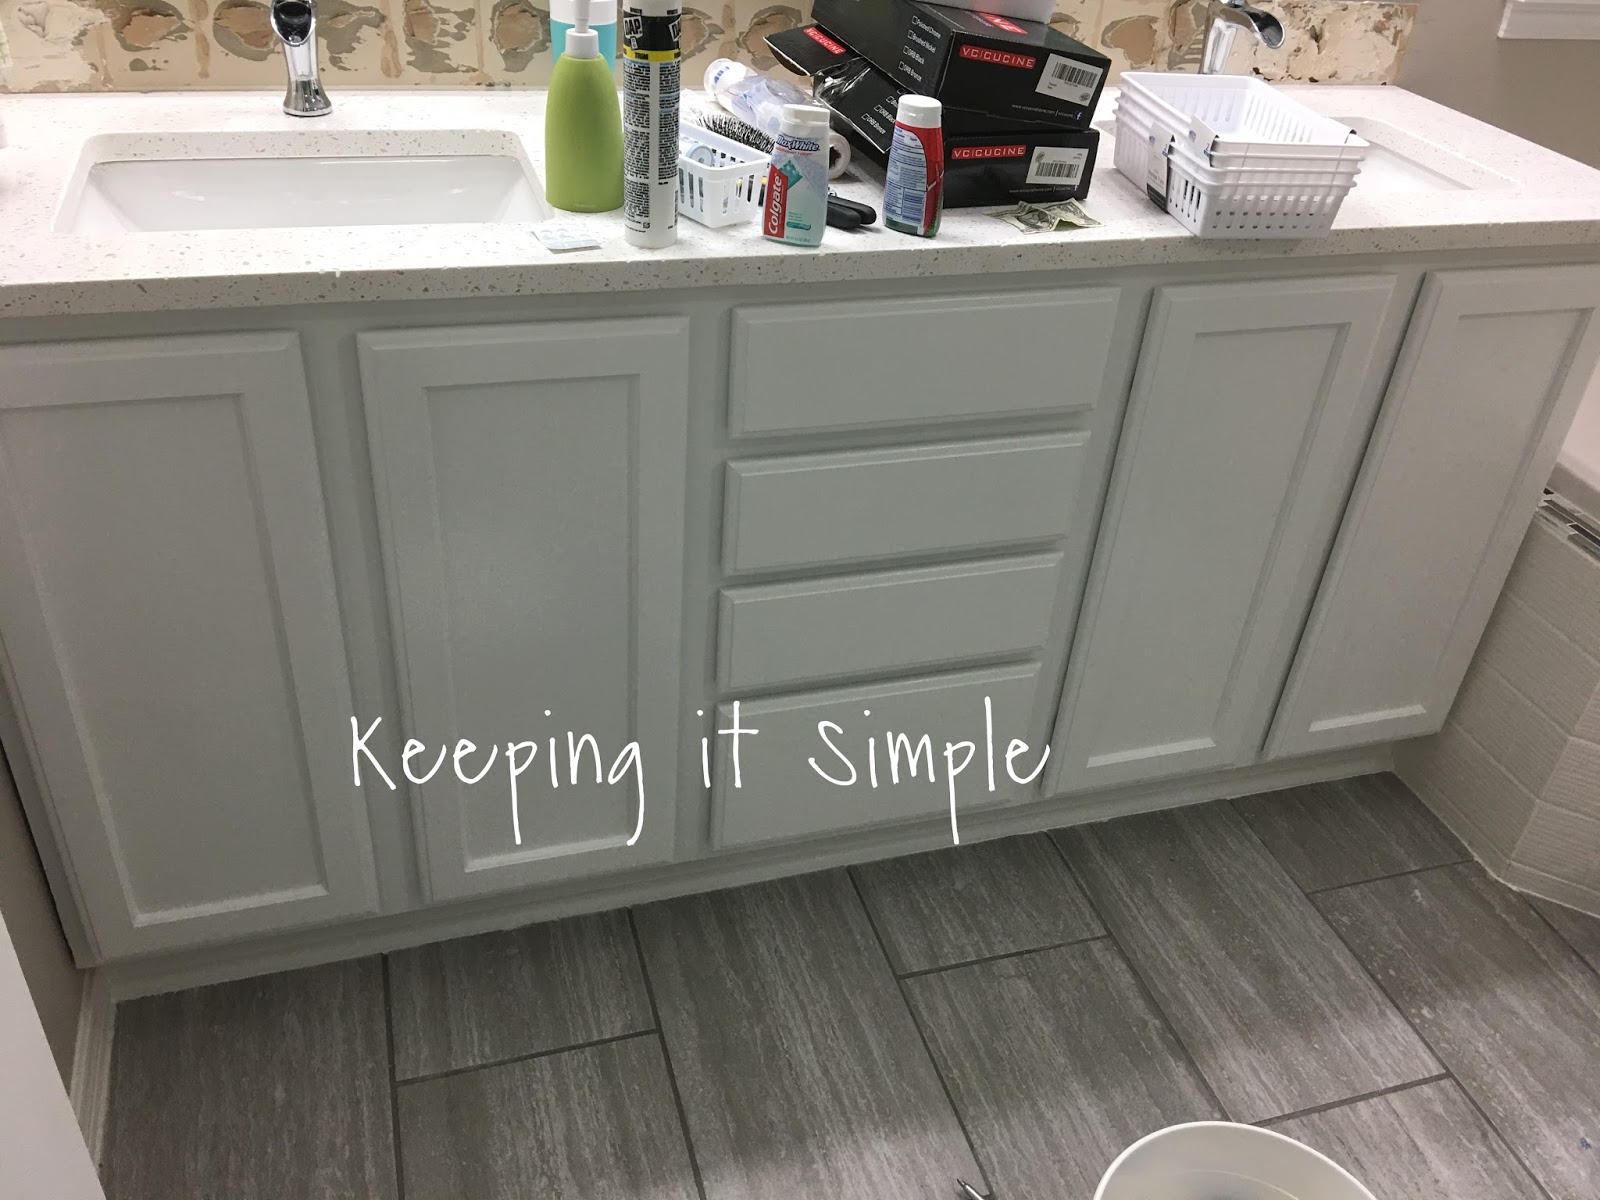 Amazing For the back splash we used the same tiles as on the bathtub To make it go quicker I set out all the tiles before we put them on so when it